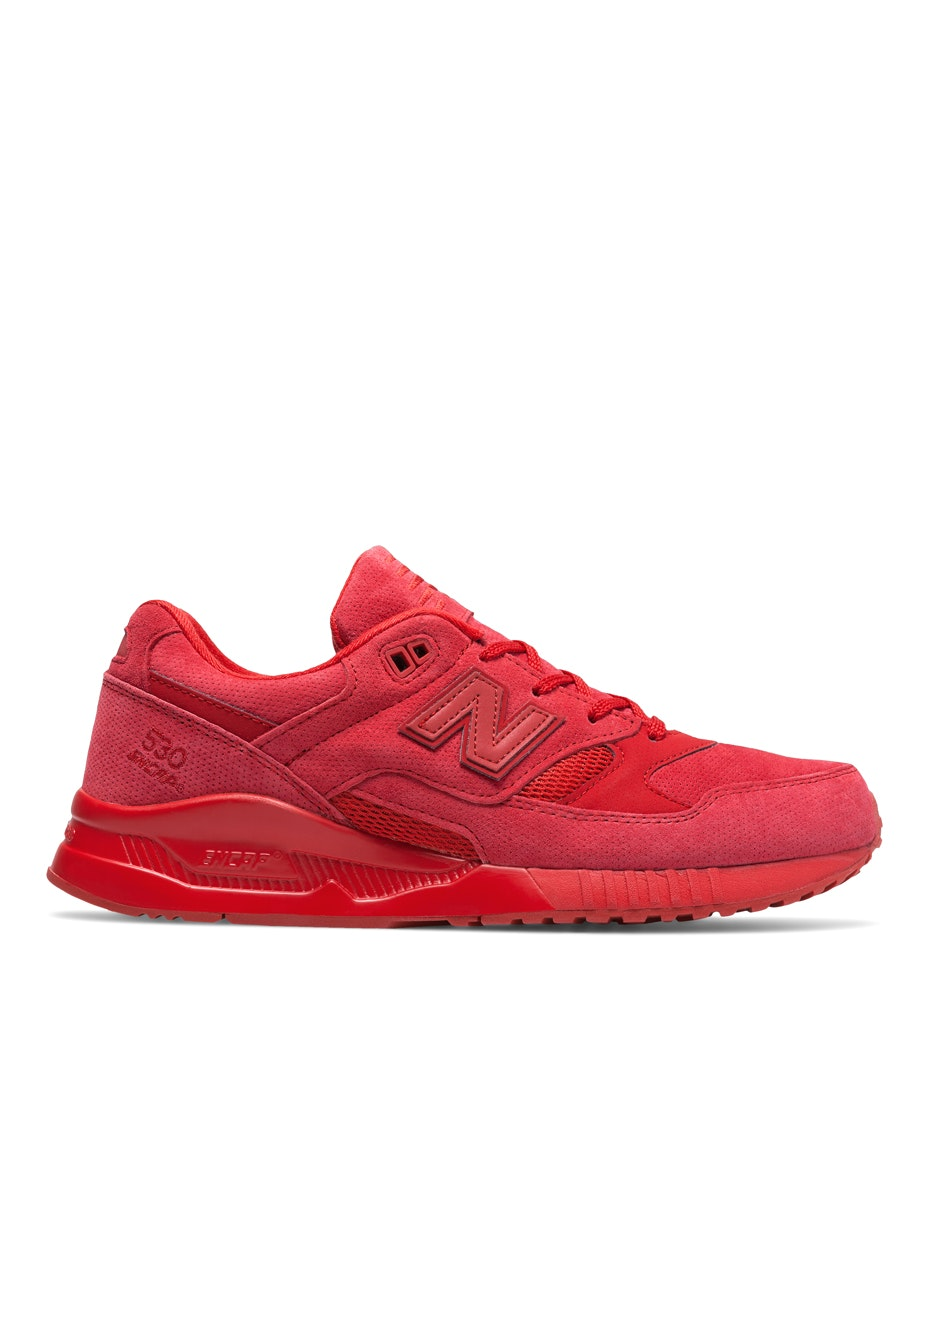 New Balance - Unisex - 530 90'S Running - Red